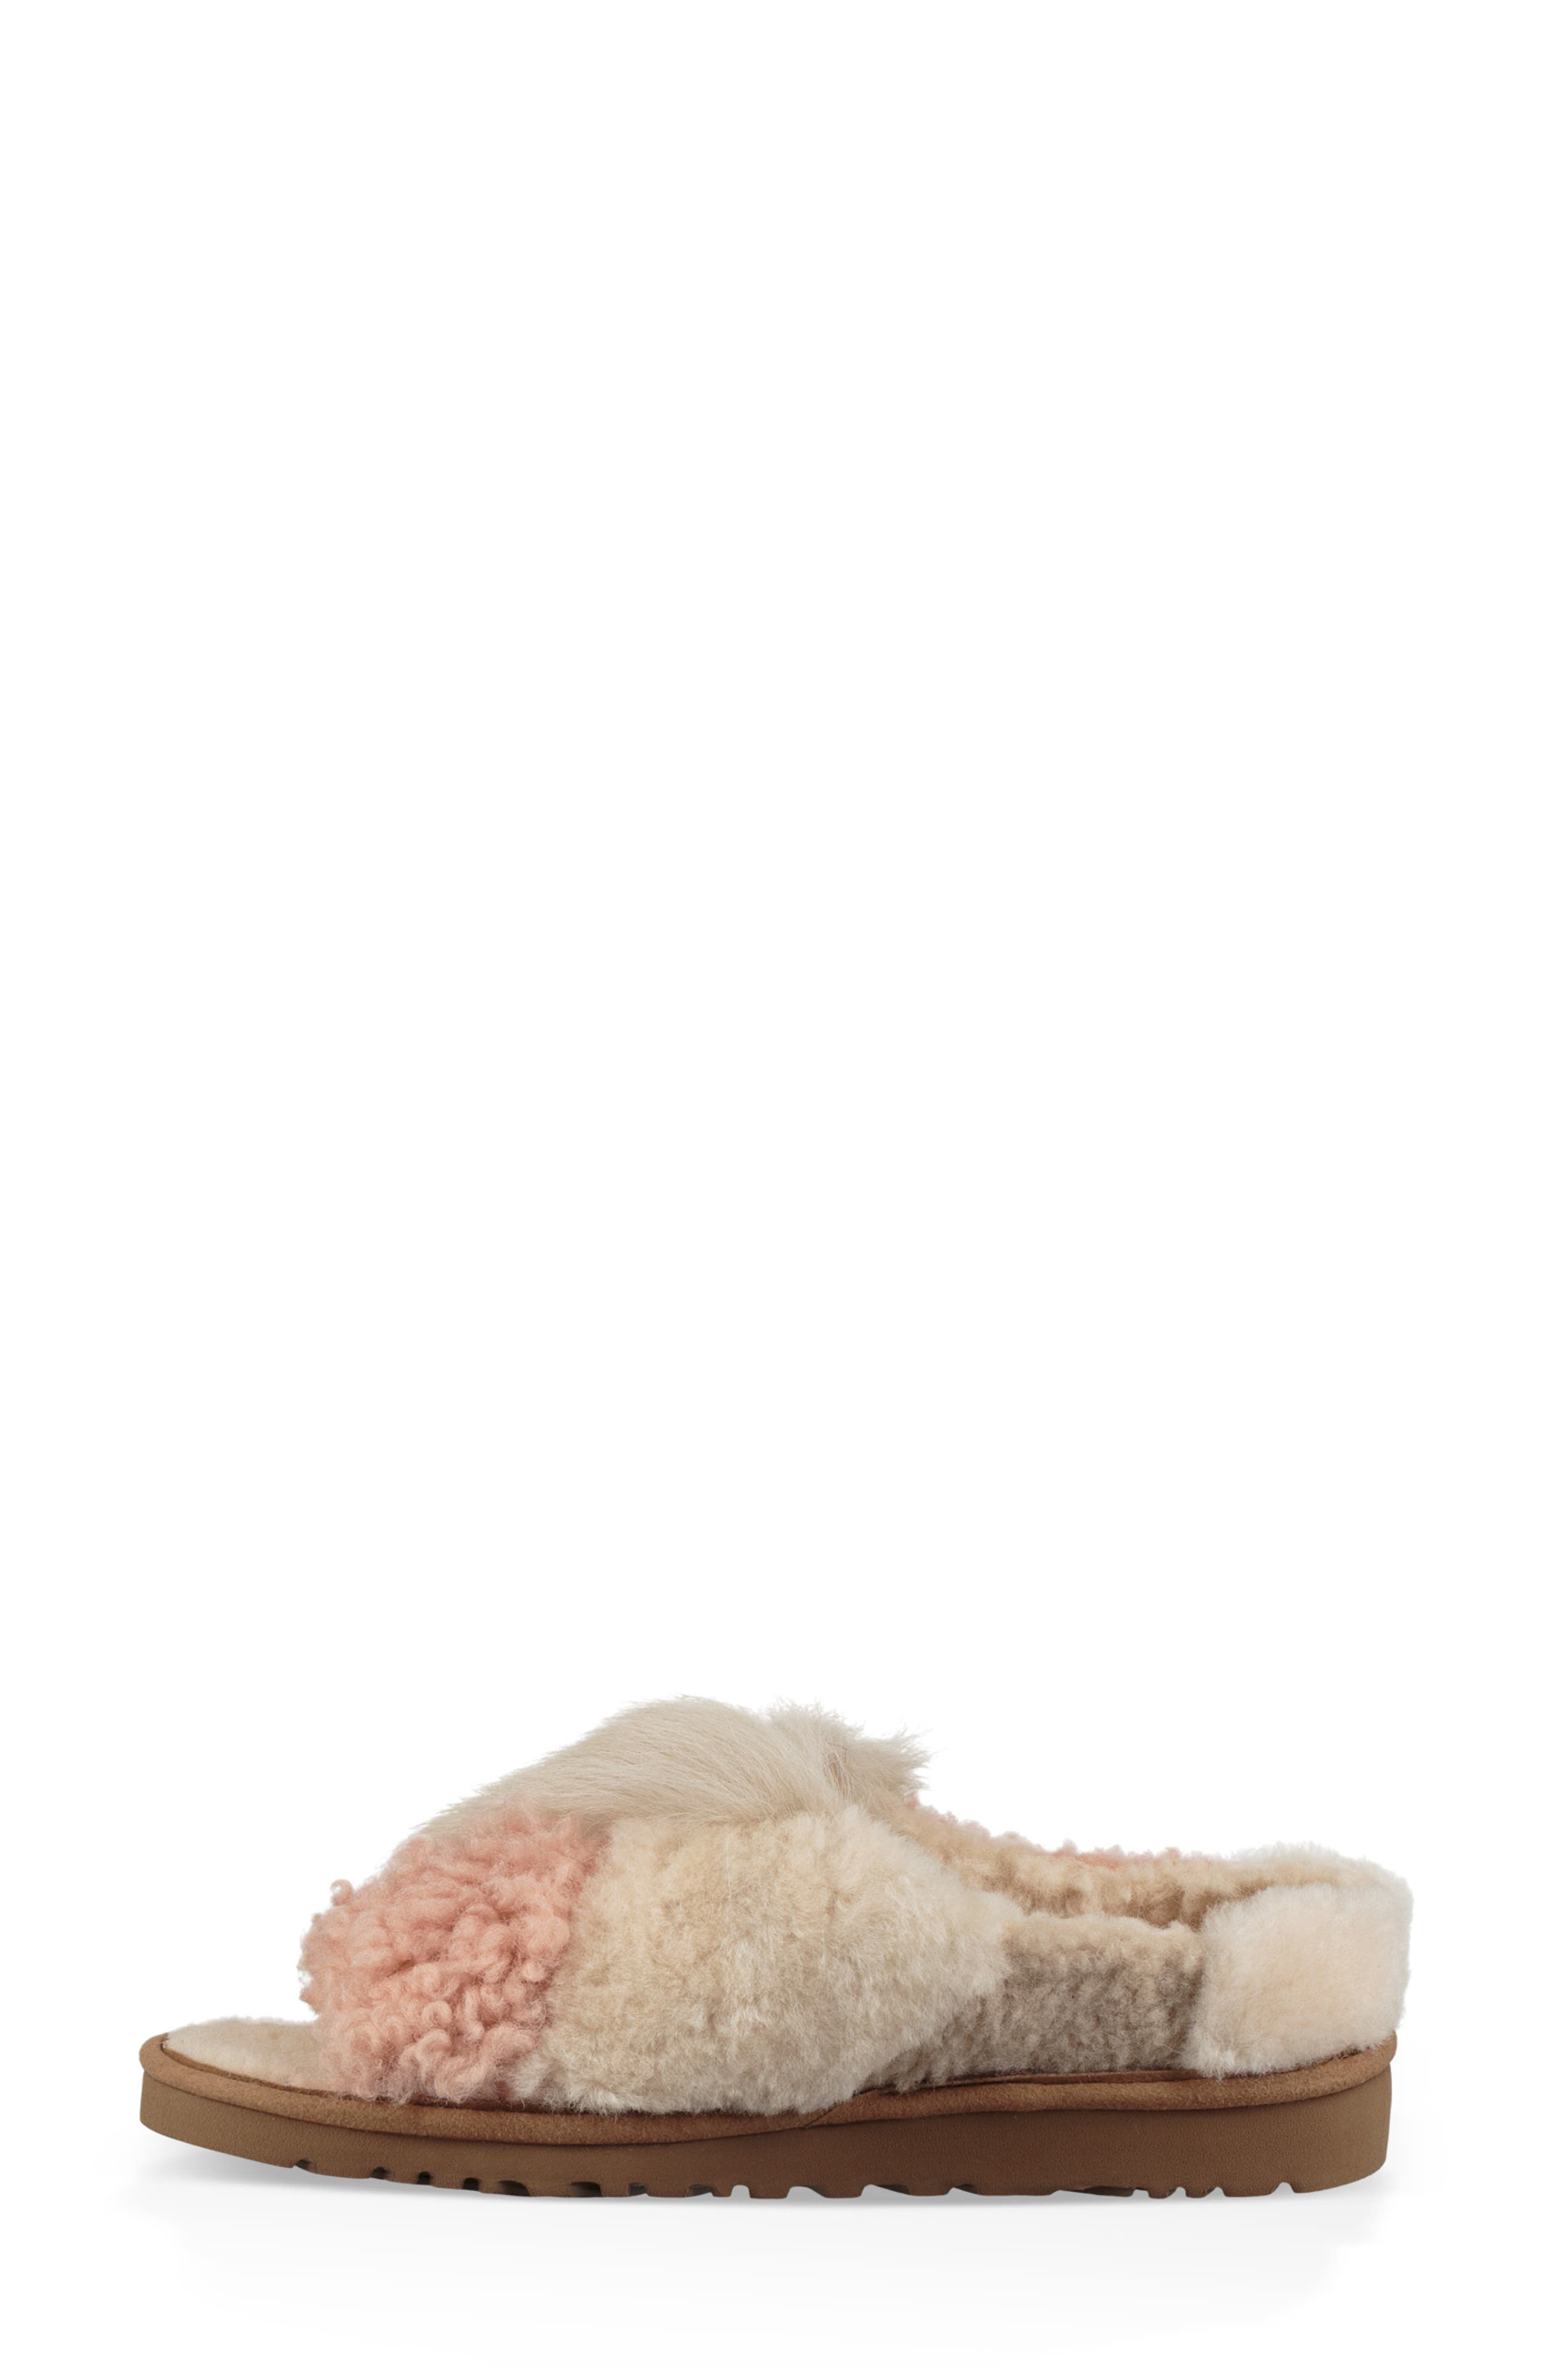 Patchwork Fluff Slipper,                             Alternate thumbnail 6, color,                             CHESTNUT